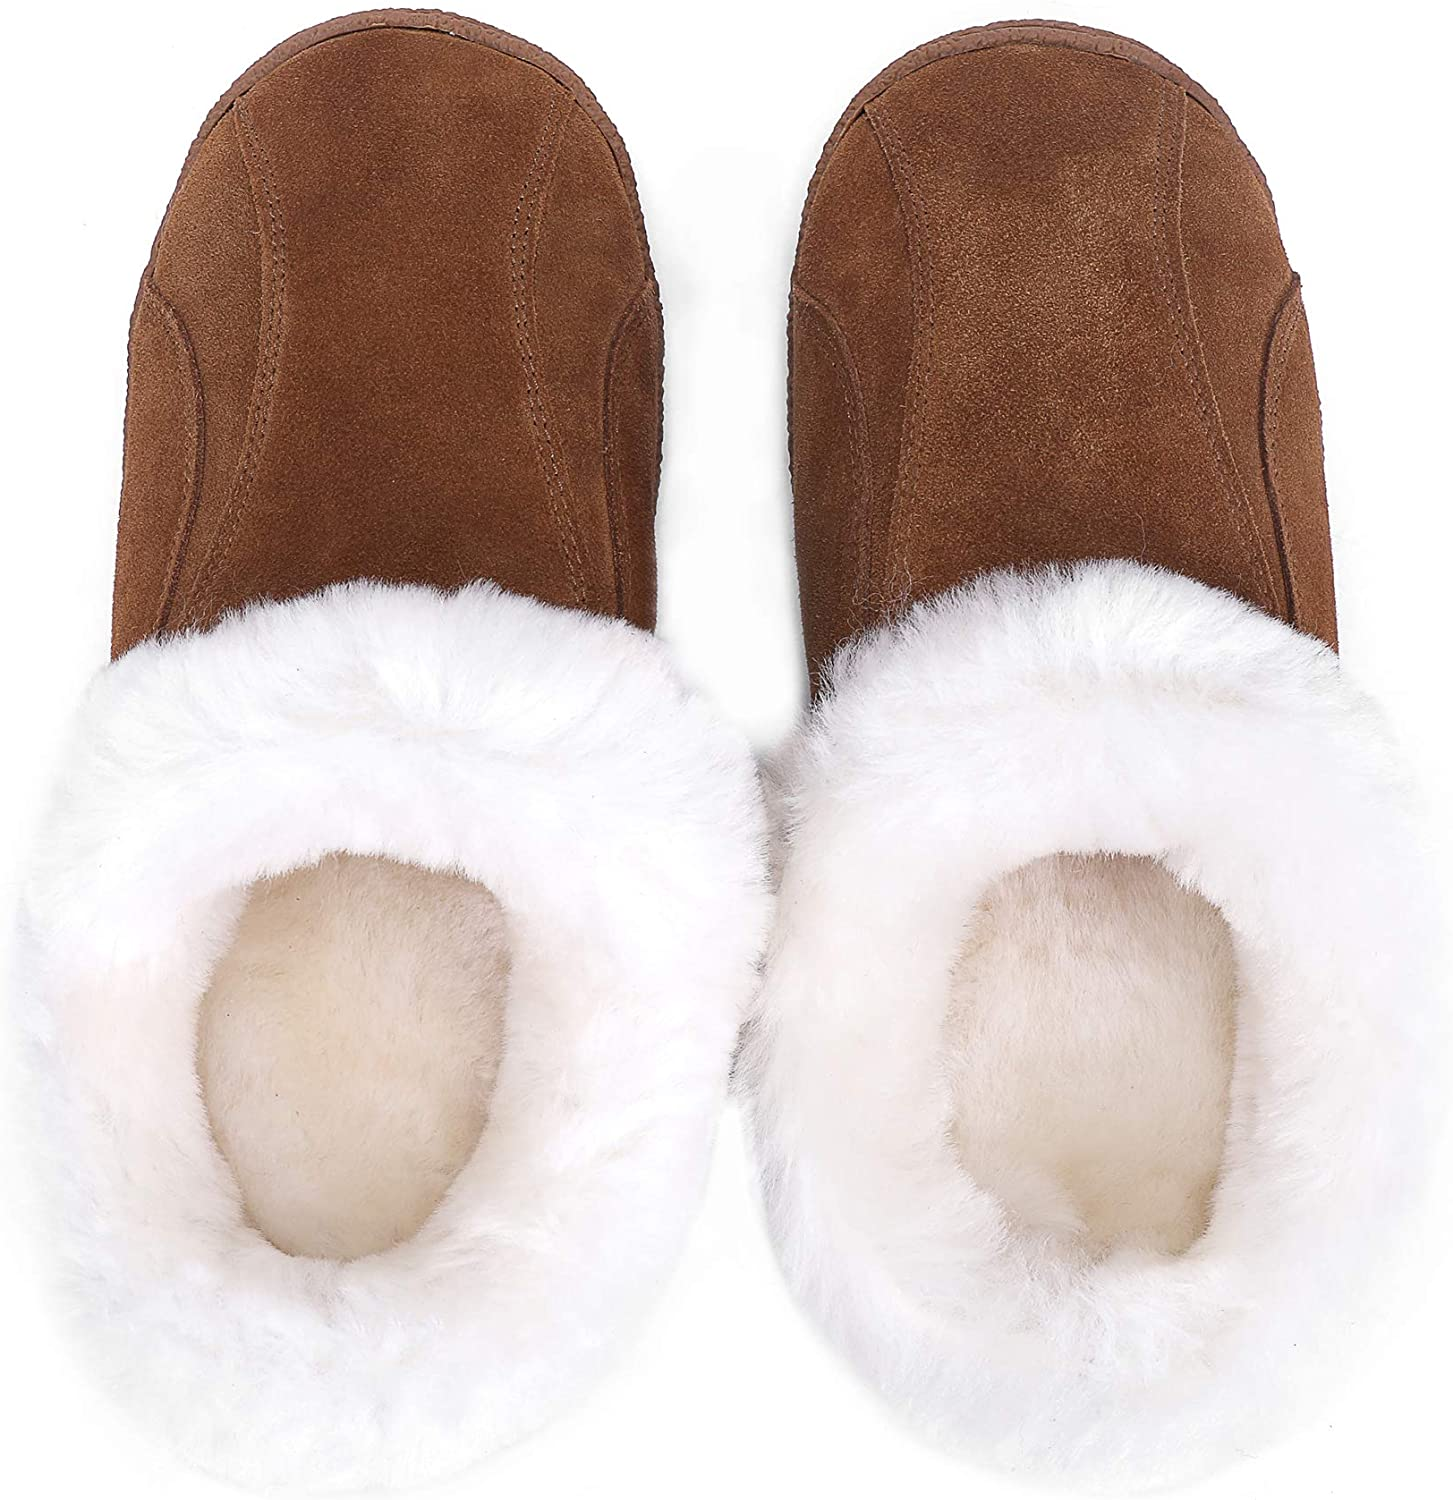 Mosa Women Genuine Leather Slippers Fluffy Australia Sheepskin Slip On House Slippers Soft Comfortable House Scuff for Indoor Outdoor